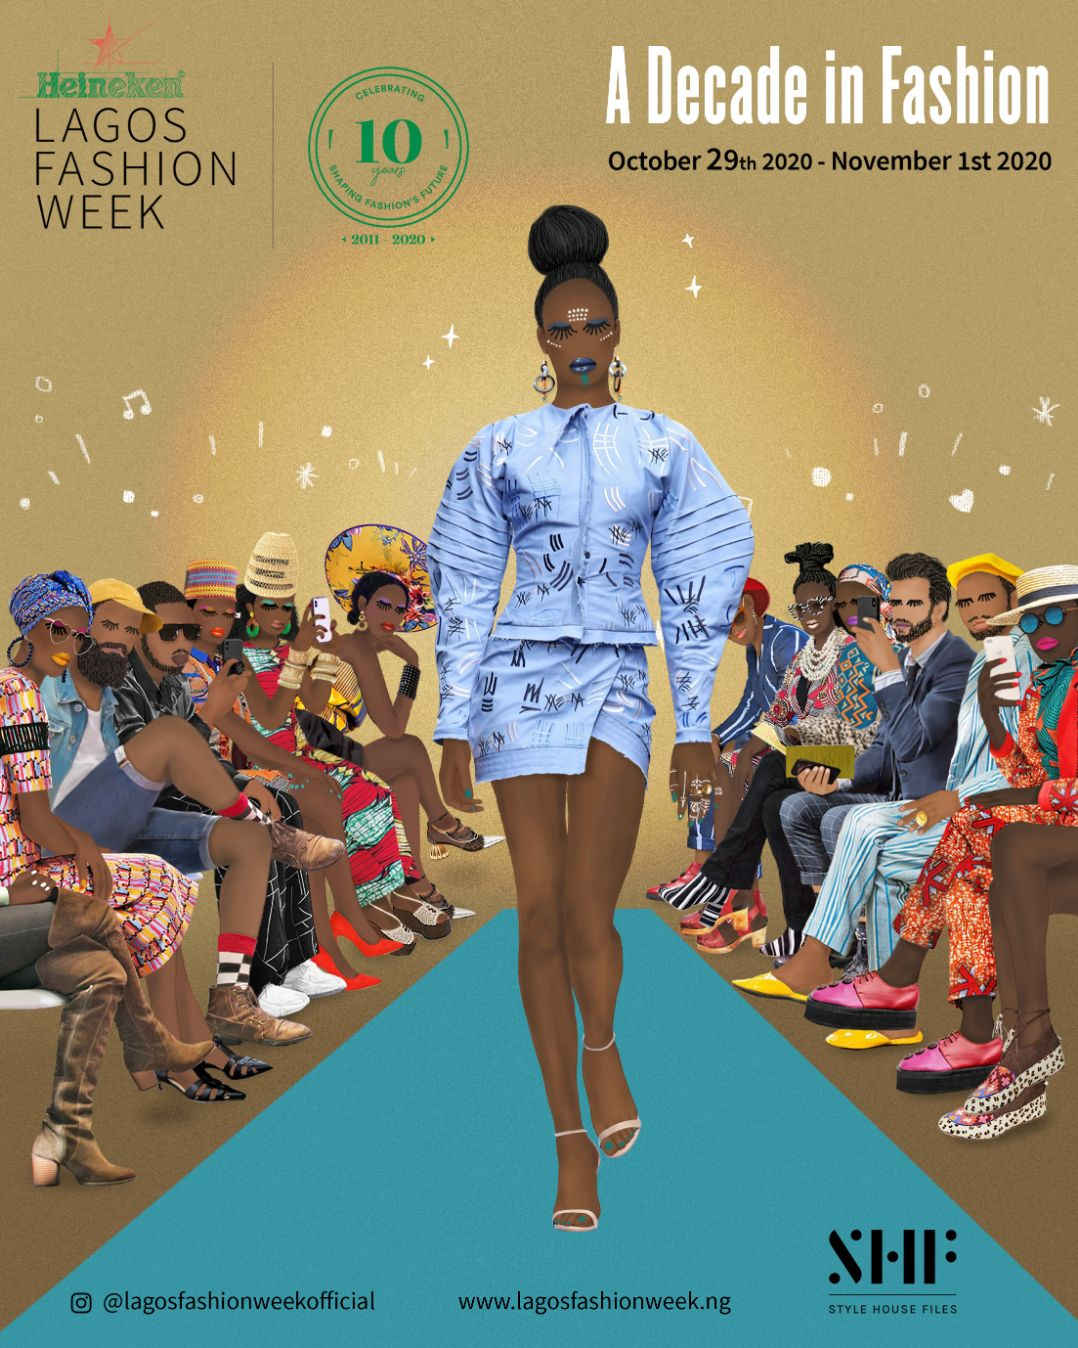 meena-a-decade-in-fashion-heineken-lagos-fashion-week